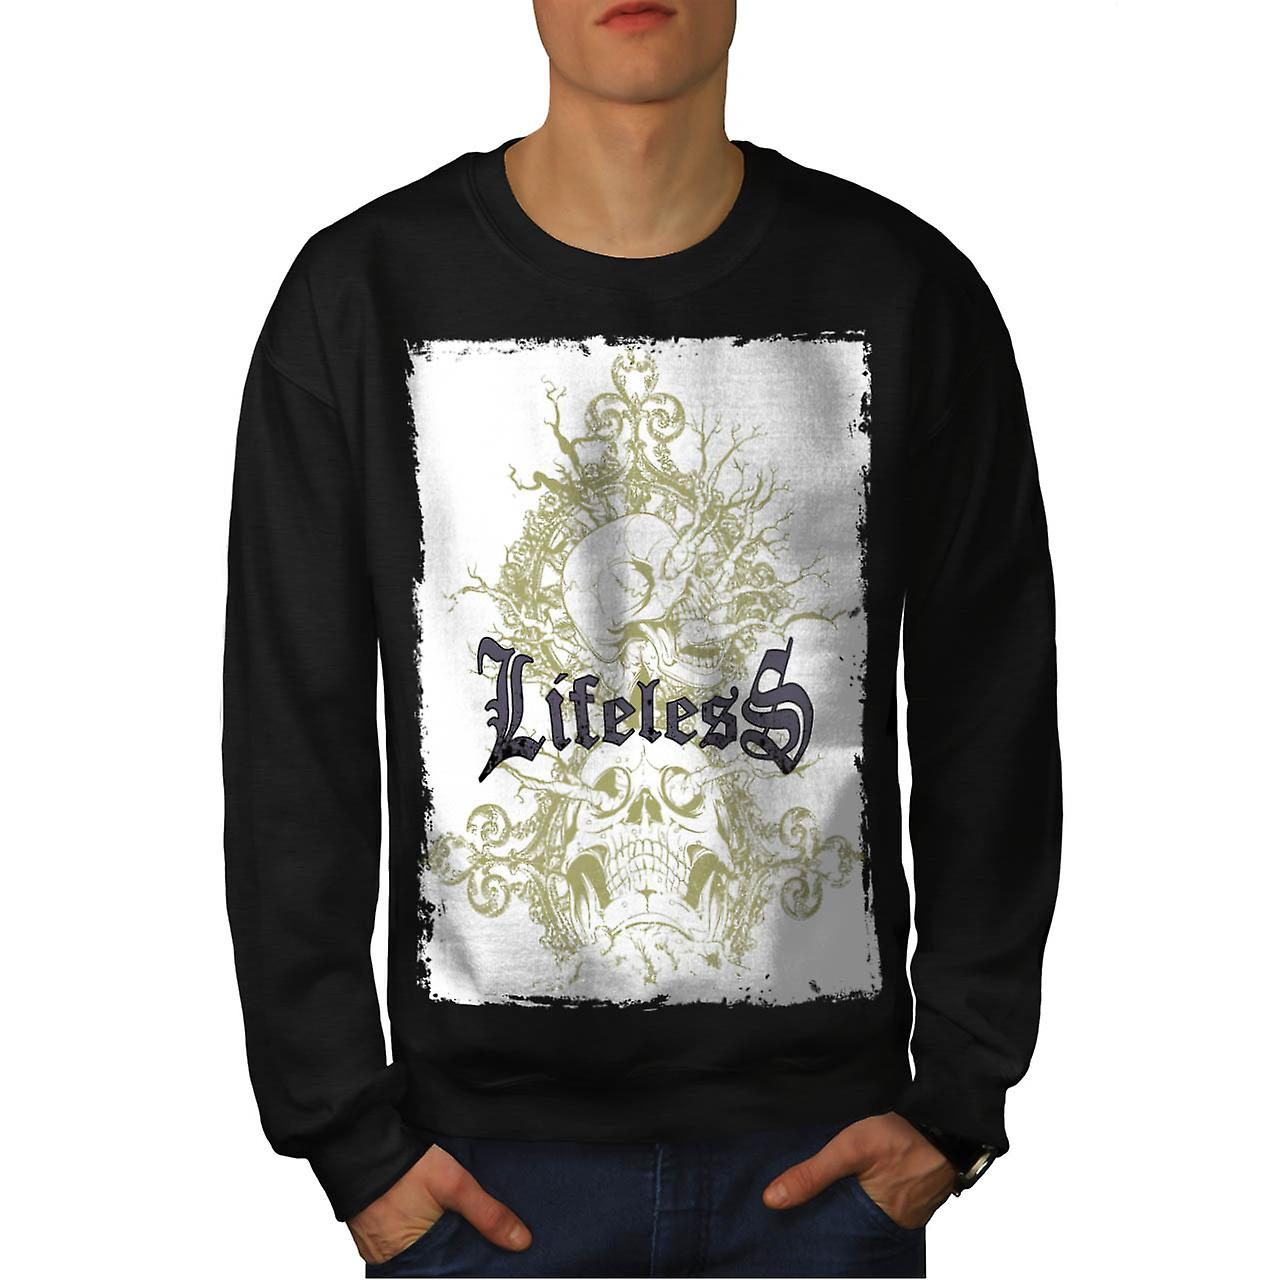 Lifeless Gothic Skull Grave Yard Men Black Sweatshirt | Wellcoda